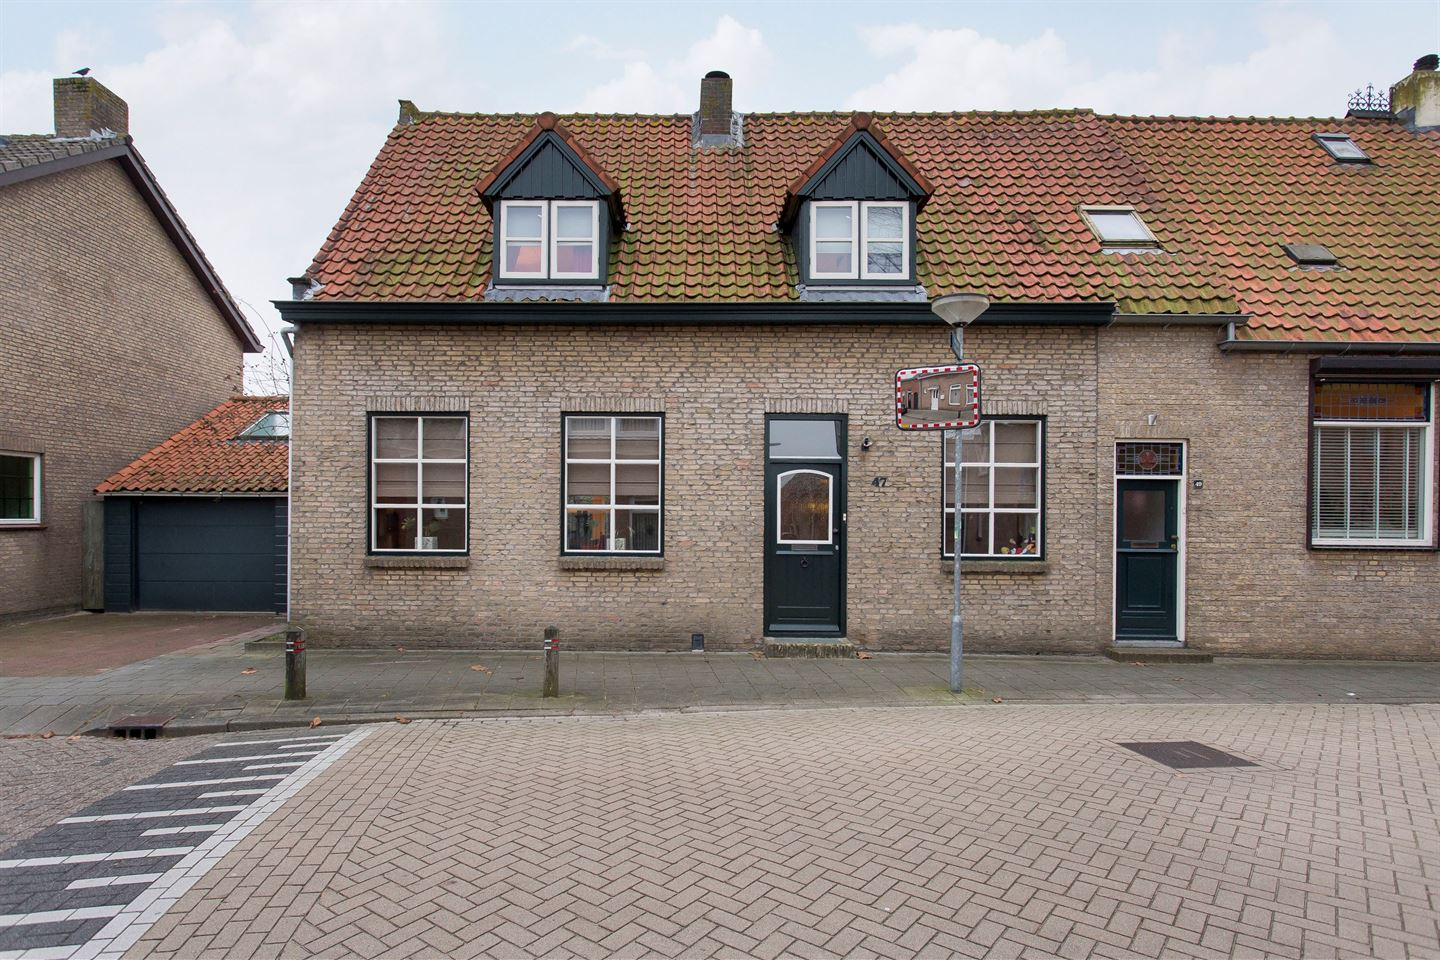 View photo 2 of Markstraat 47